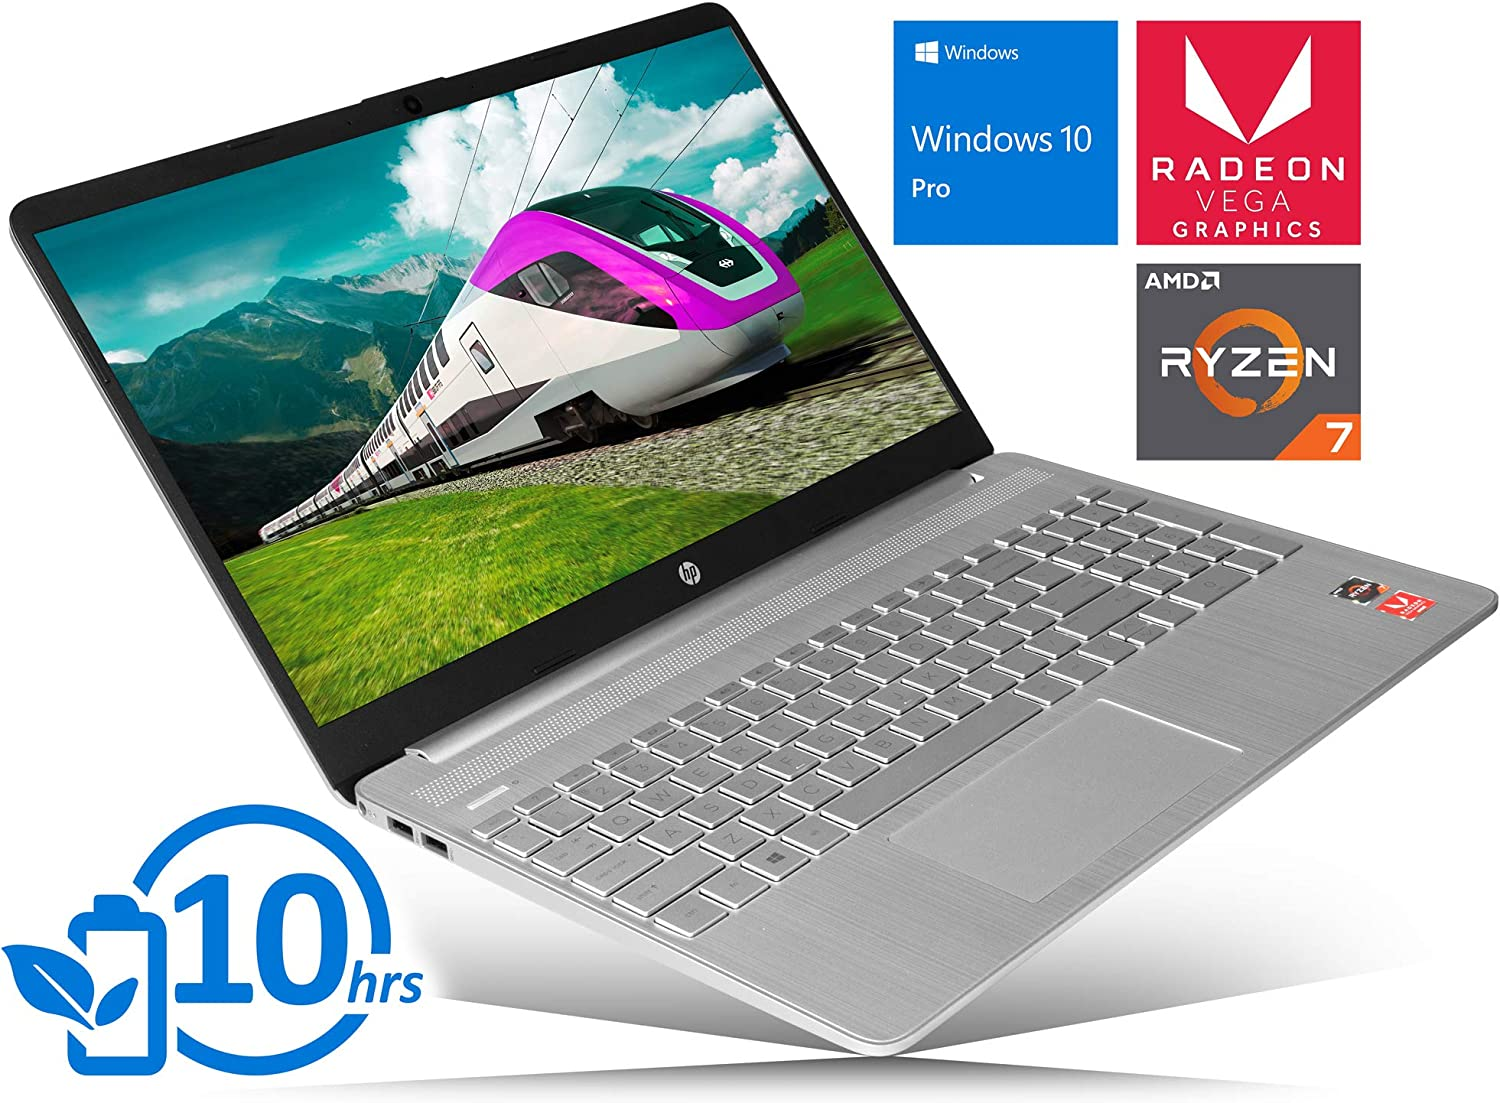 "HP 15 Laptop, 15.6"" HD Touch Display, AMD Ryzen 7 3700U Upto 4.0GHz, 16GB RAM, 512GB NVMe SSD, Vega 10, HDMI, Card Reader, Wi-Fi, Bluetooth, Windows 10 Pro"